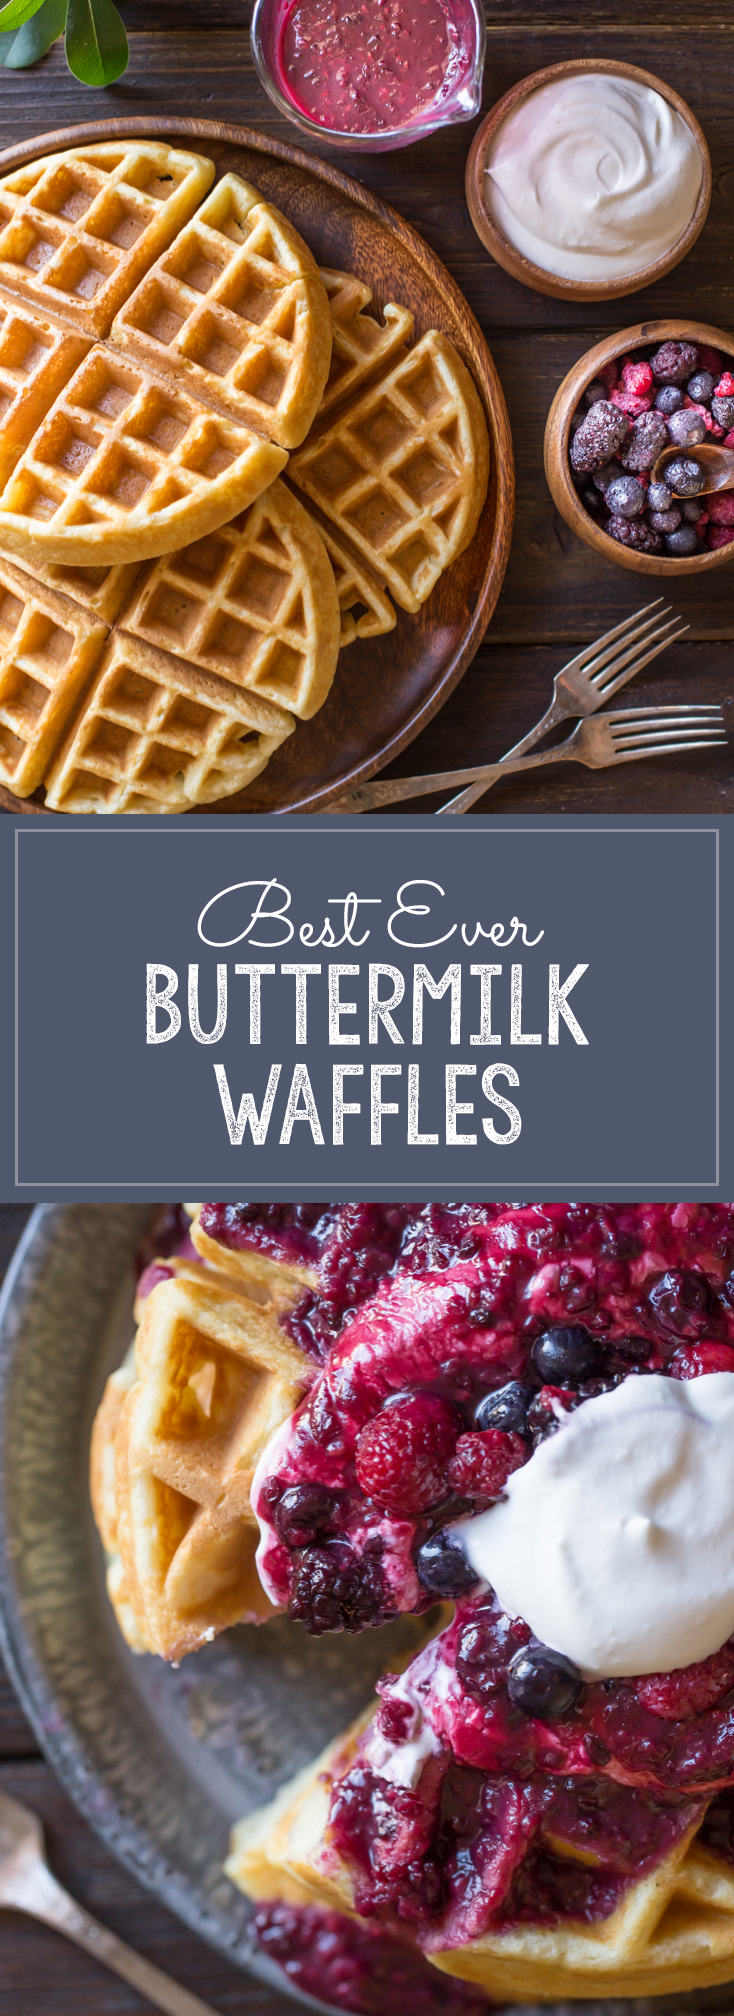 Ever Buttermilk Waffles - All you need to know to make perfect waffles ...